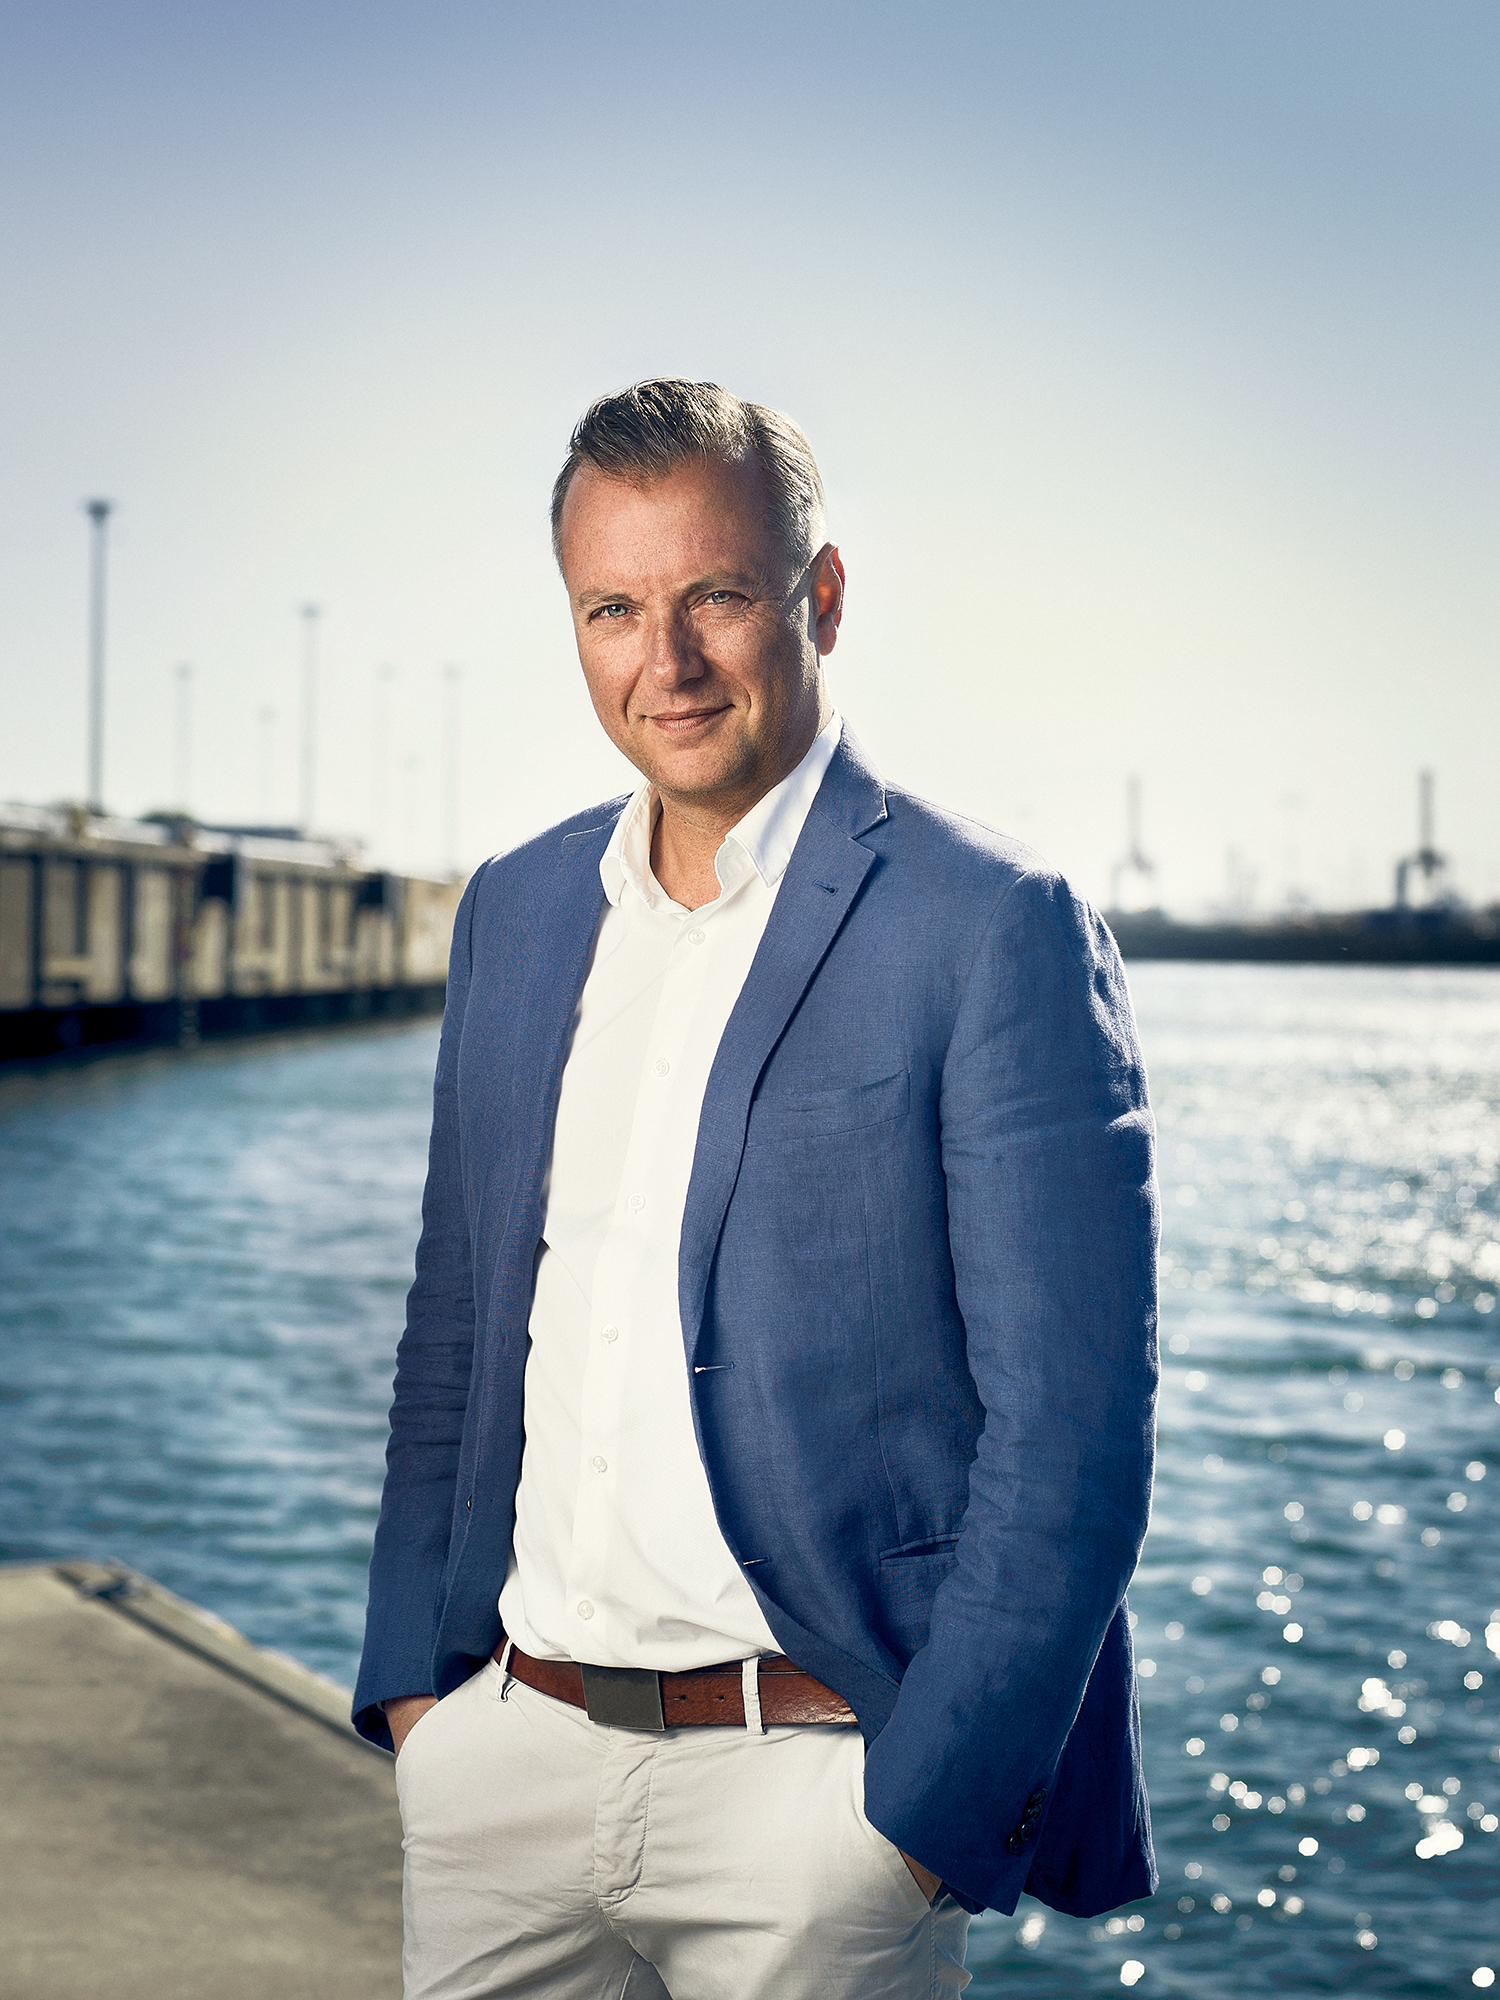 Mikael Karlsson, Vice President Autonomous Solutions at Volvo Trucks